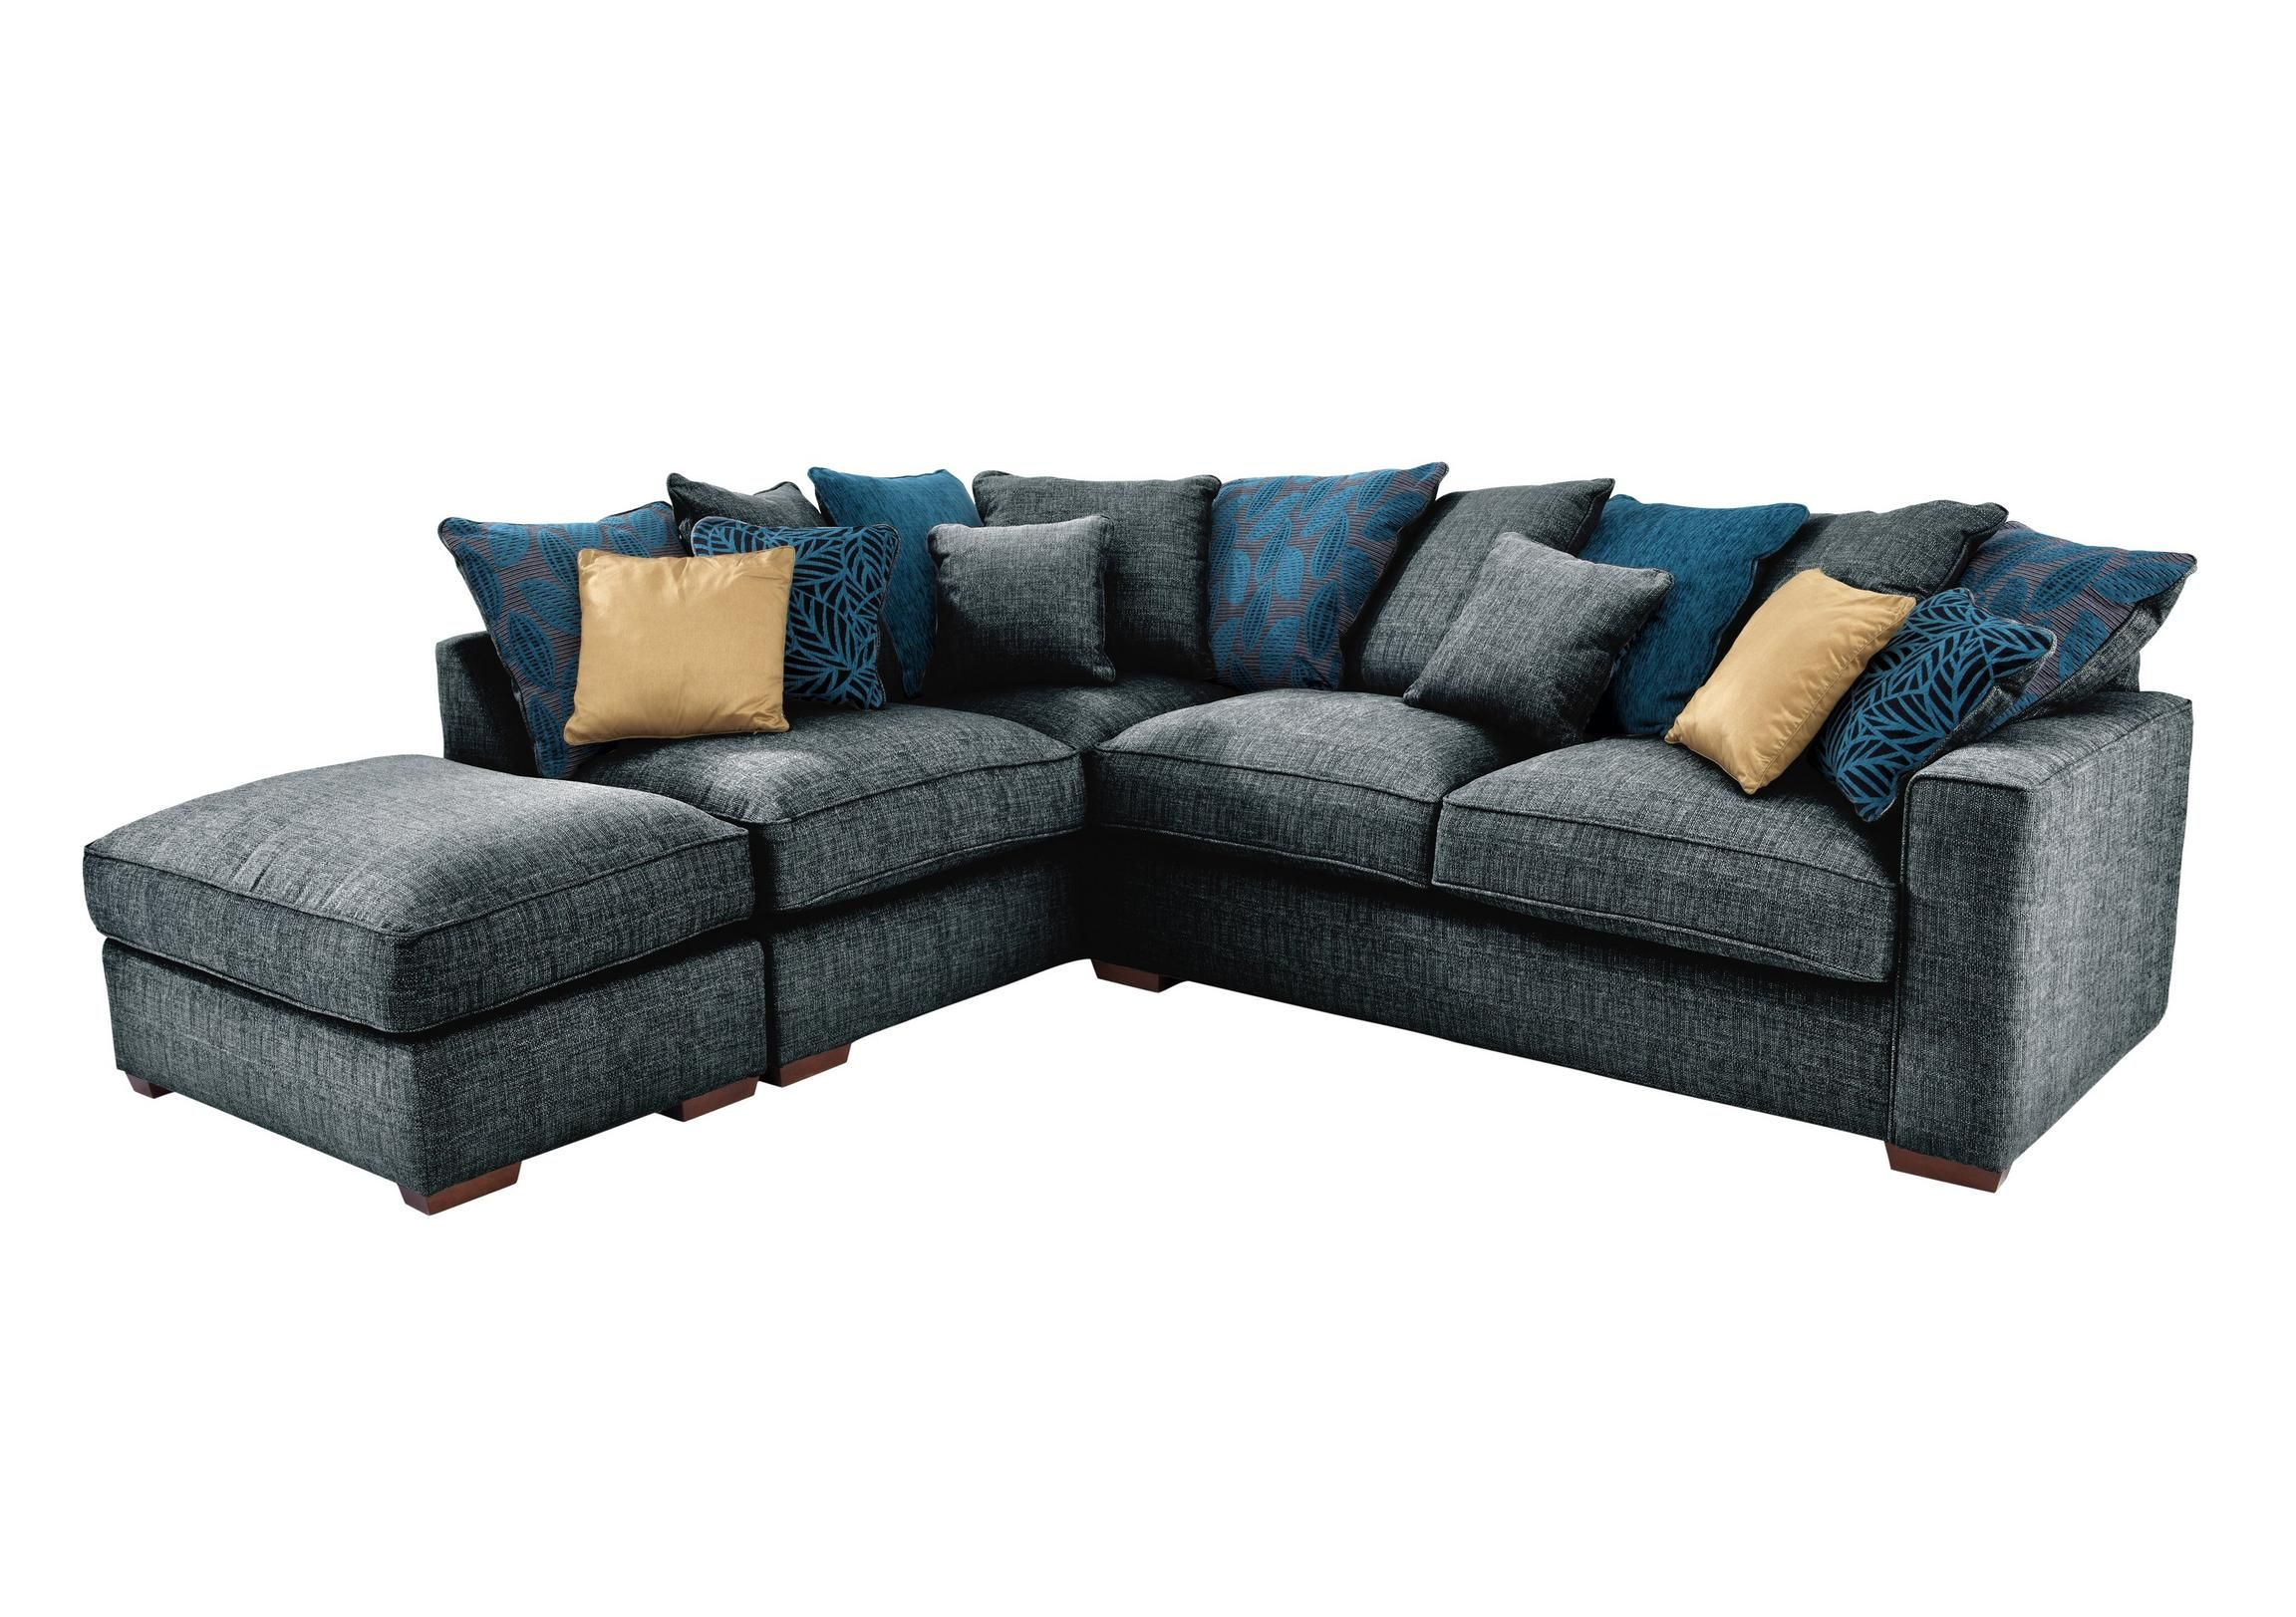 Shop now for the Dune Fabric Corner Sofa with Footstool